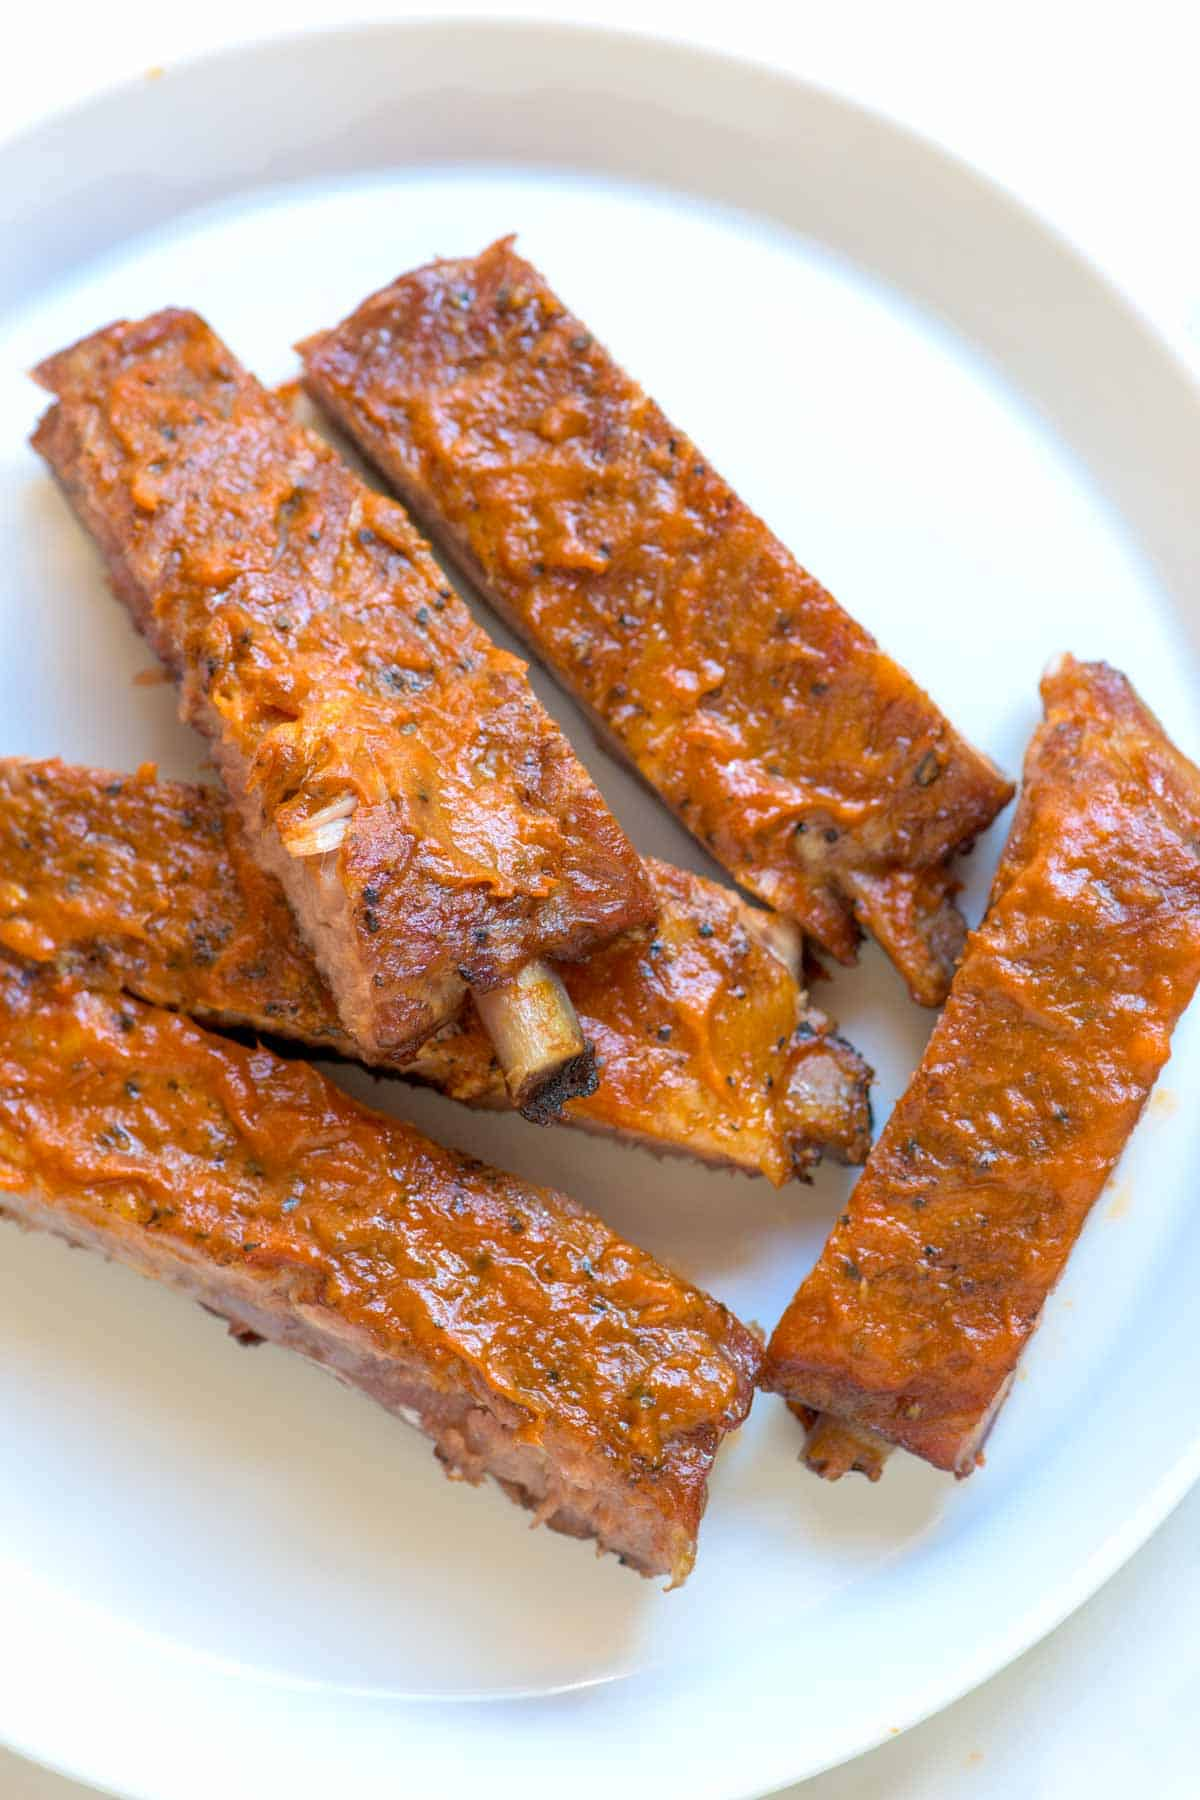 How To Make Tender, Falloffthe Bone Ribs